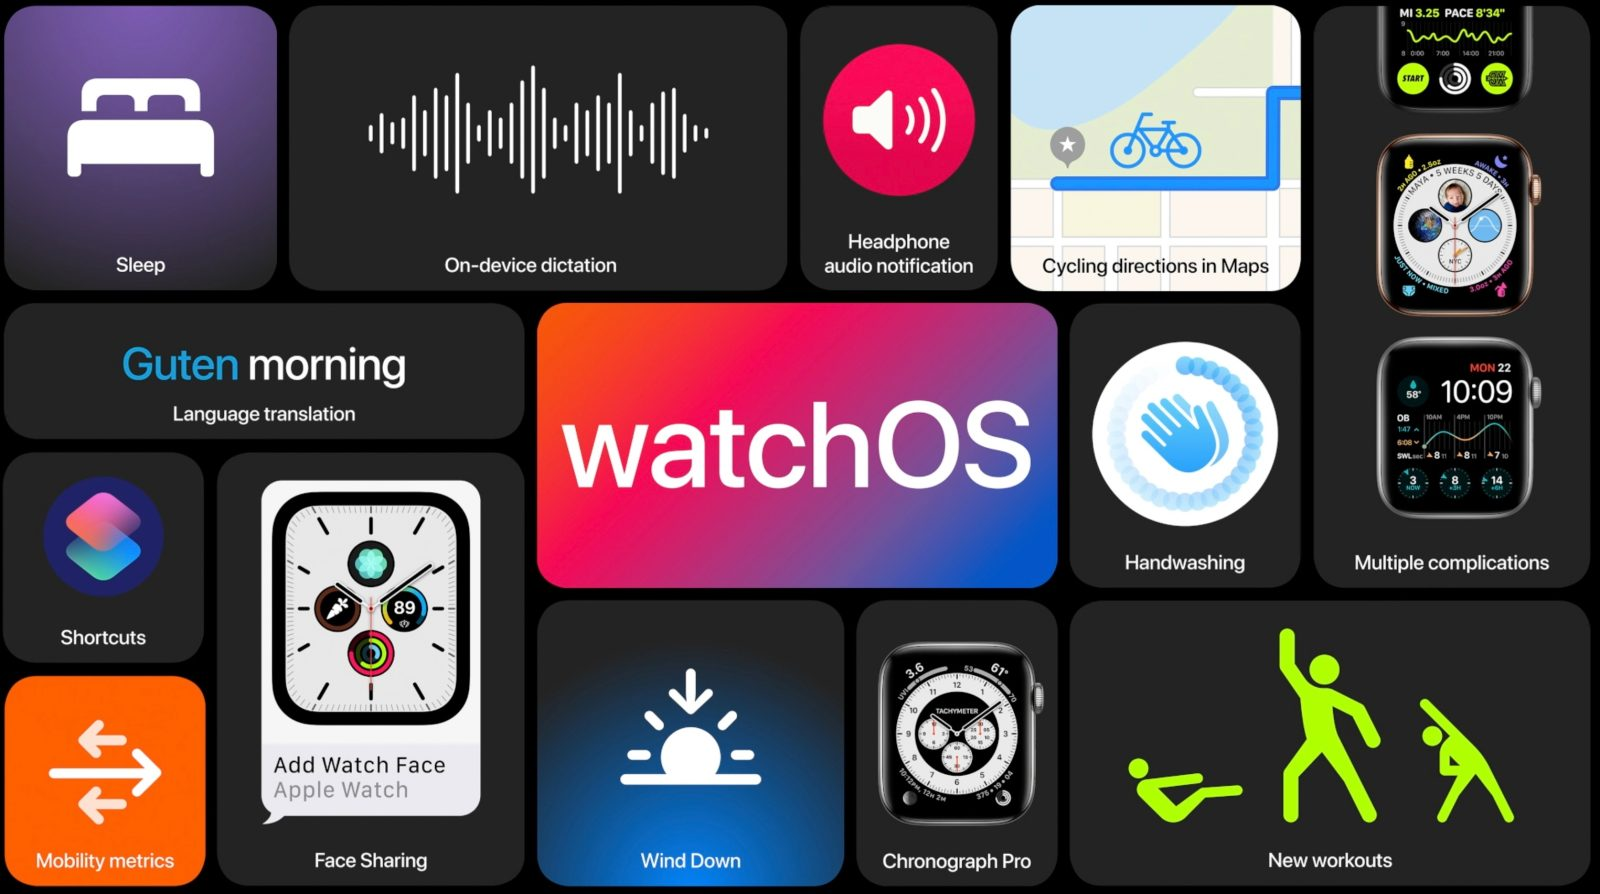 Apple releases watchOS 7 beta 2 to developers ahead of public beta release